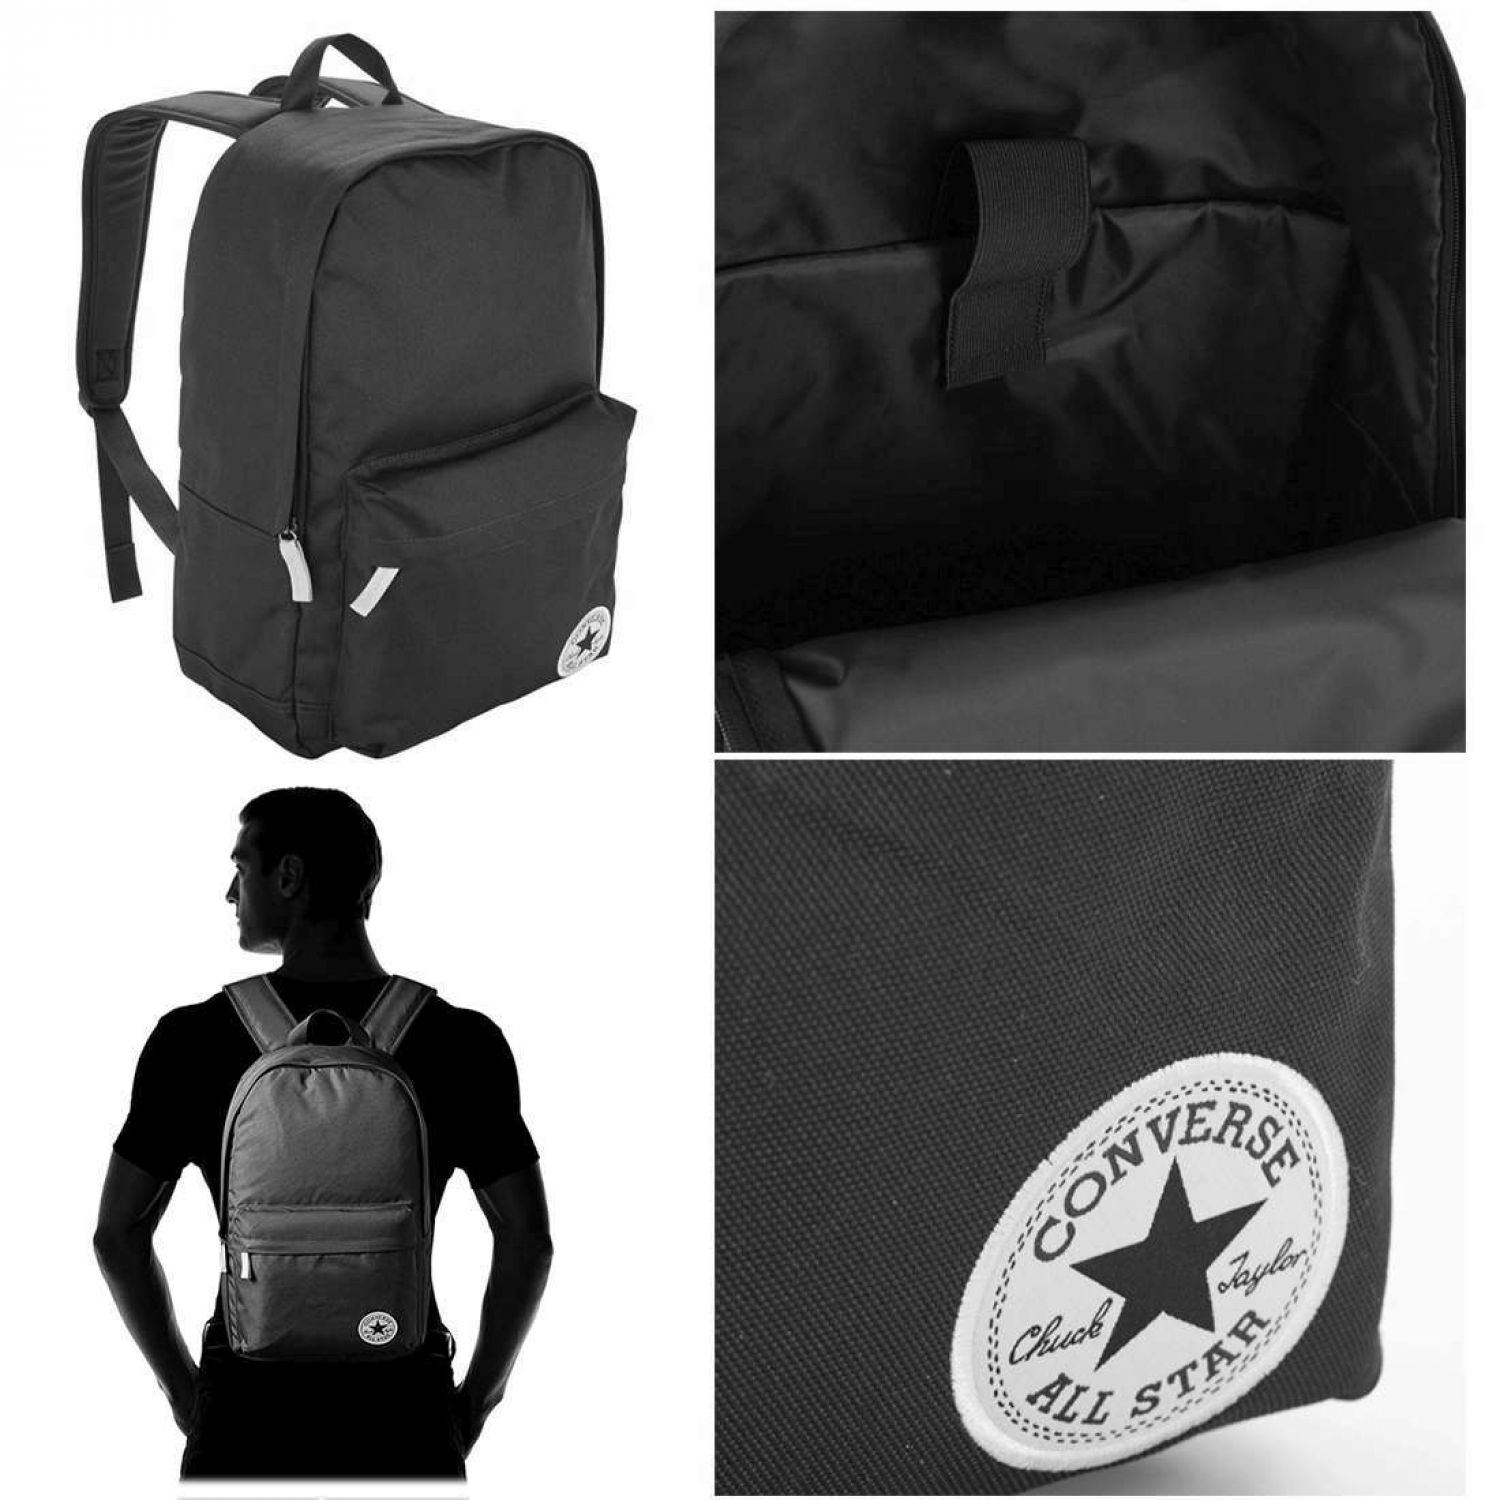 bcc1d6913c7 UNISEX CONVERSE city bag core poly ALL STAR city backpack adults children  day Pack backpack carry-on Star Chuck Taylor bag 25-29 litres